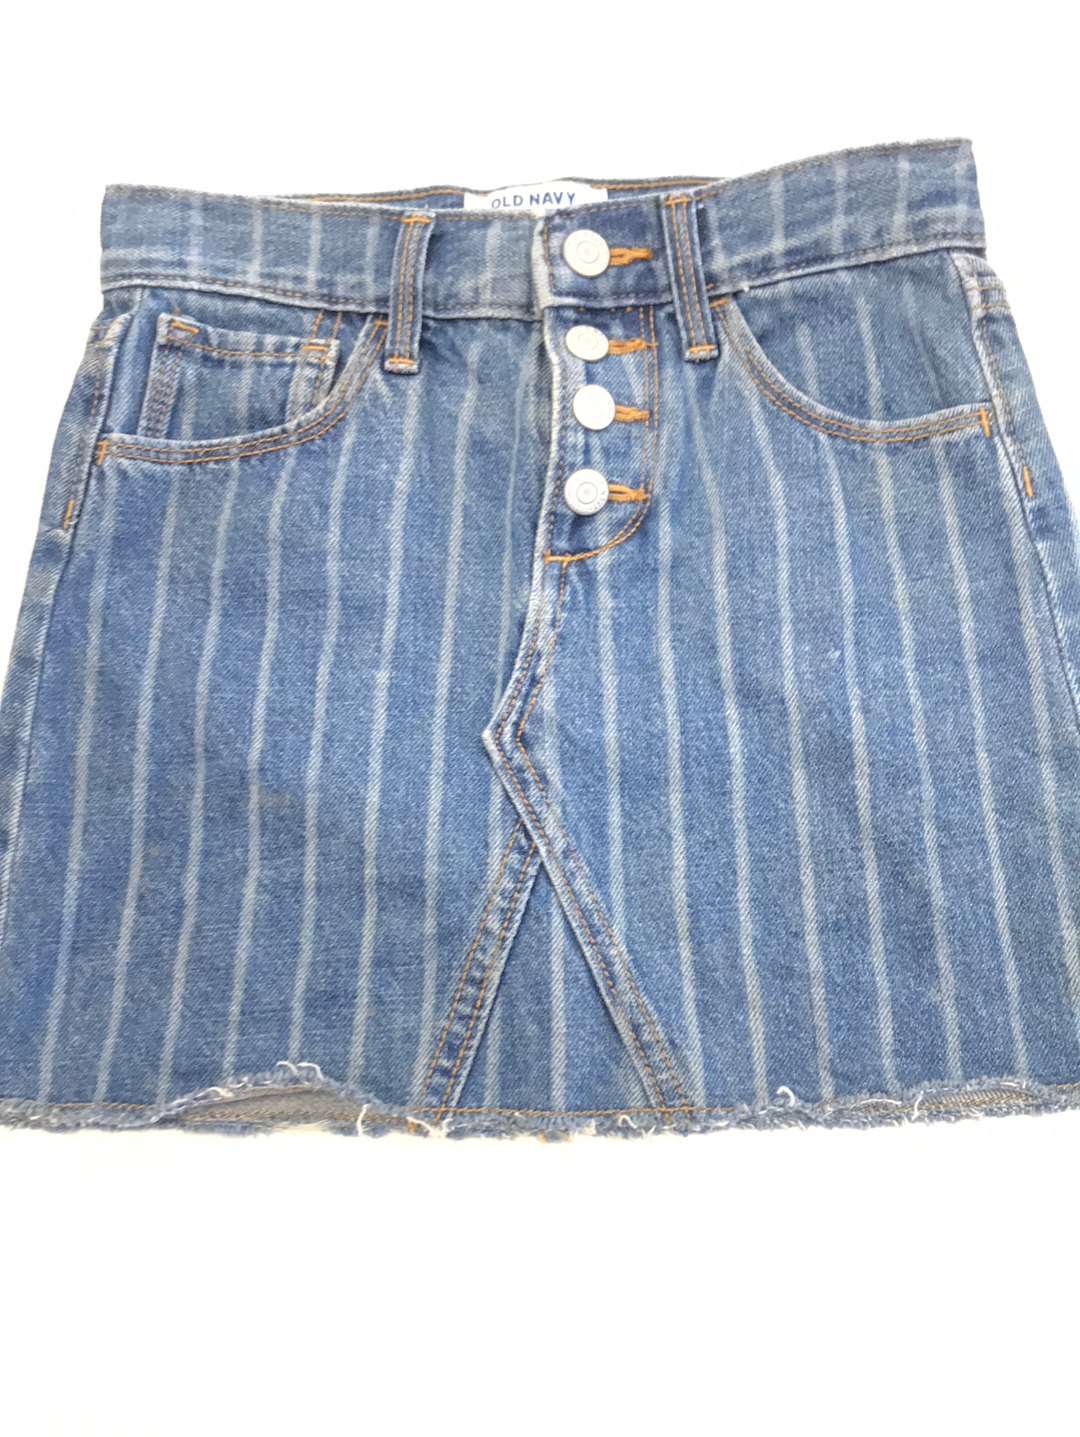 Denim Skirt 6 Old Navy